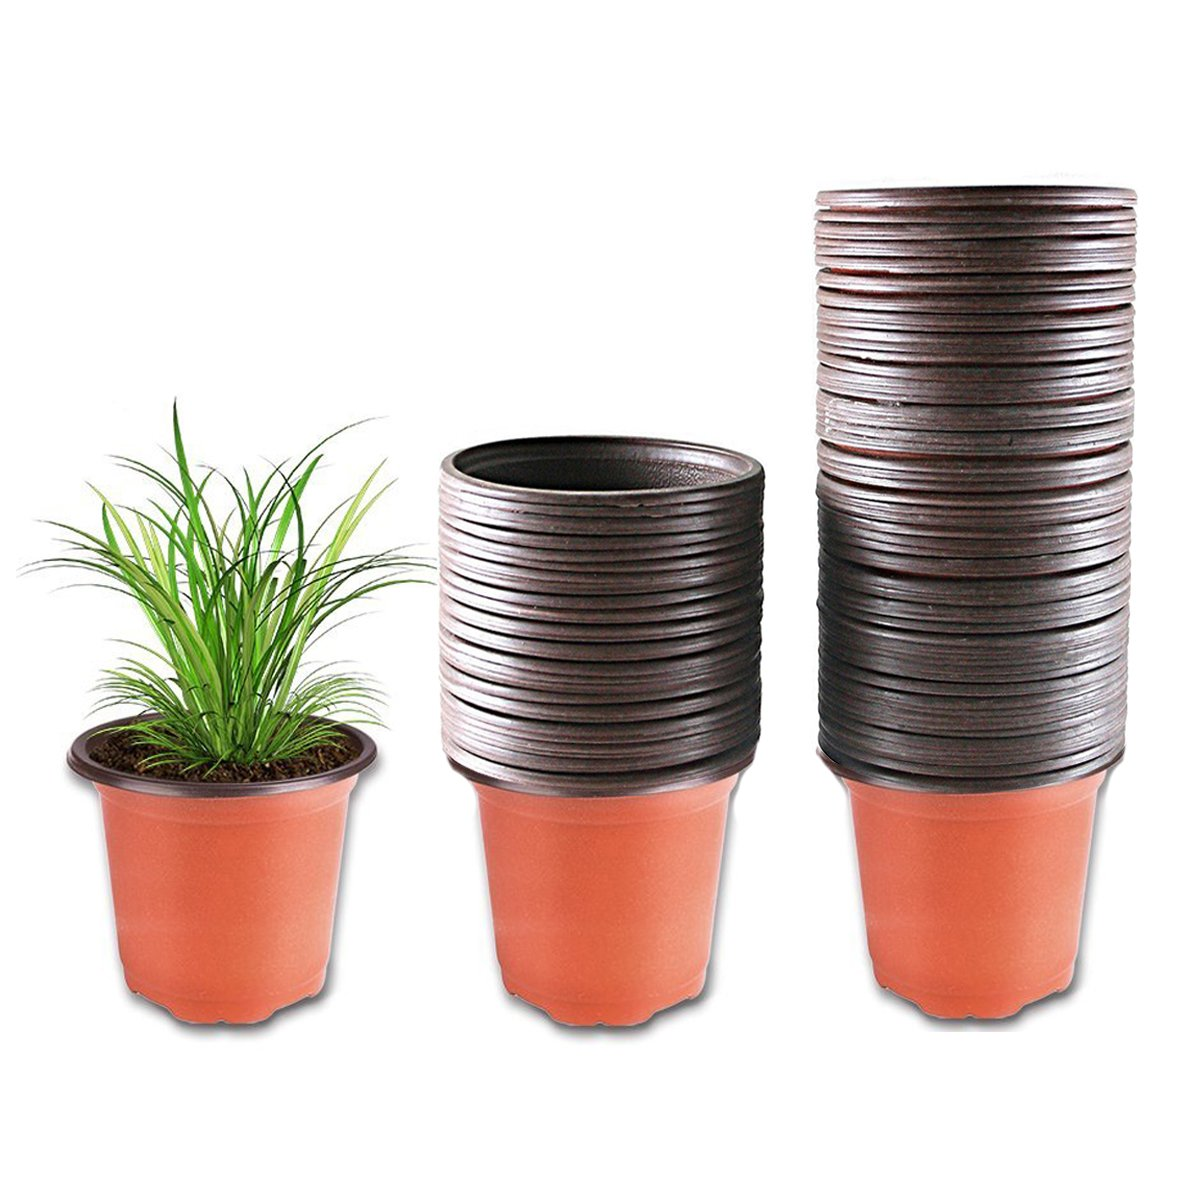 Plastic Plant Pot 100 Pack Flower Nursery Pots Starter Pot for Seedling Little Garden Pots to Repot Succulents and Small Plants by MiMiLive